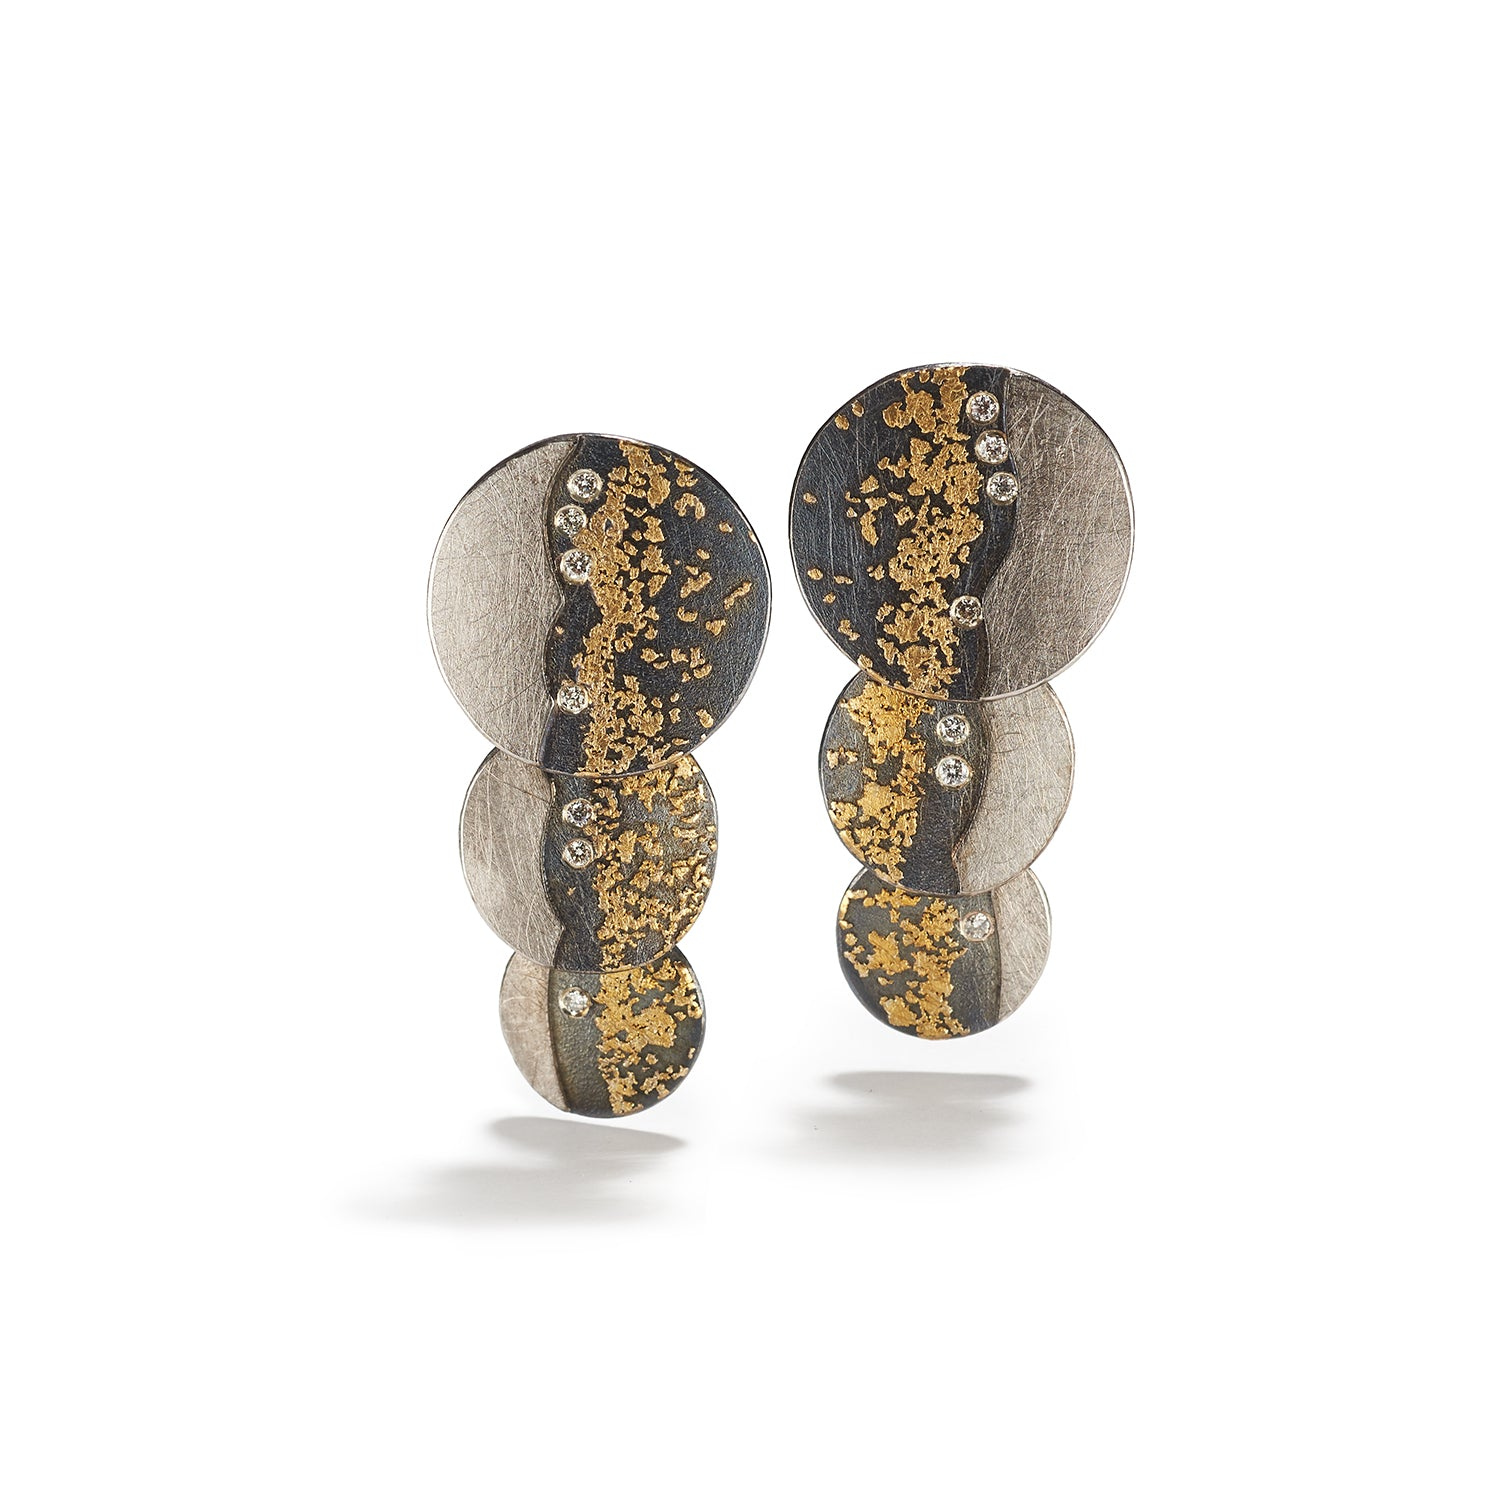 Palladium & Gold Disk Earrings